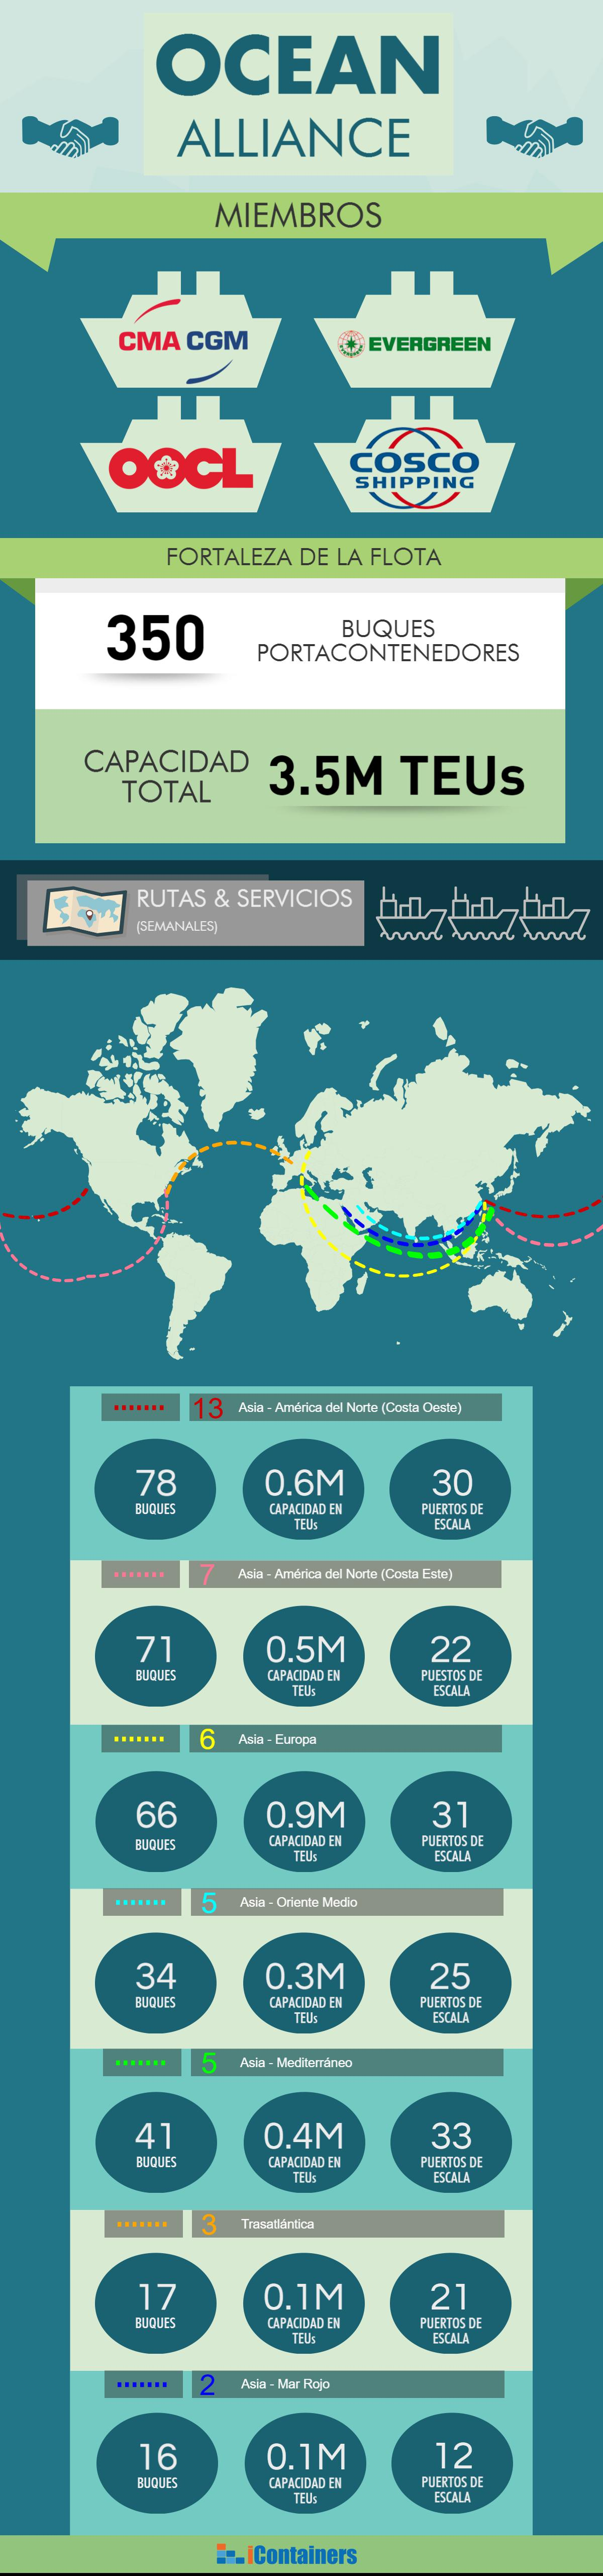 Ocean Alliance, infographic